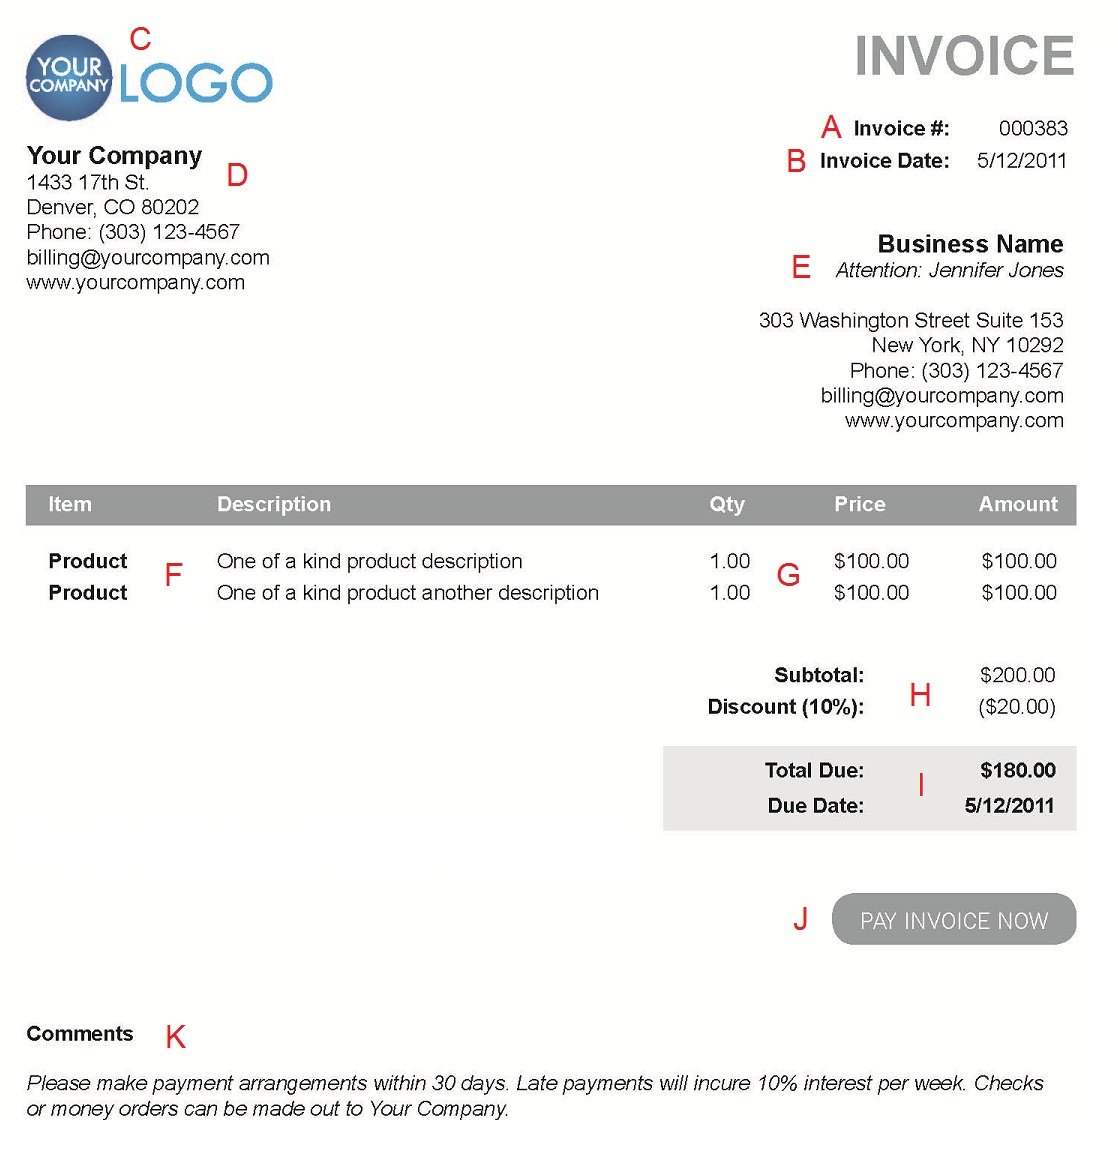 Picnictoimpeachus  Scenic The  Different Sections Of An Electronic Payment Invoice With Inspiring A  With Extraordinary Freshbook Invoice Also Vehicle Invoice Prices In Addition Invoicing Solutions And Define Pro Forma Invoice As Well As Invoice Template For Ipad Additionally Invoice Template Sample From Paysimplecom With Picnictoimpeachus  Inspiring The  Different Sections Of An Electronic Payment Invoice With Extraordinary A  And Scenic Freshbook Invoice Also Vehicle Invoice Prices In Addition Invoicing Solutions From Paysimplecom